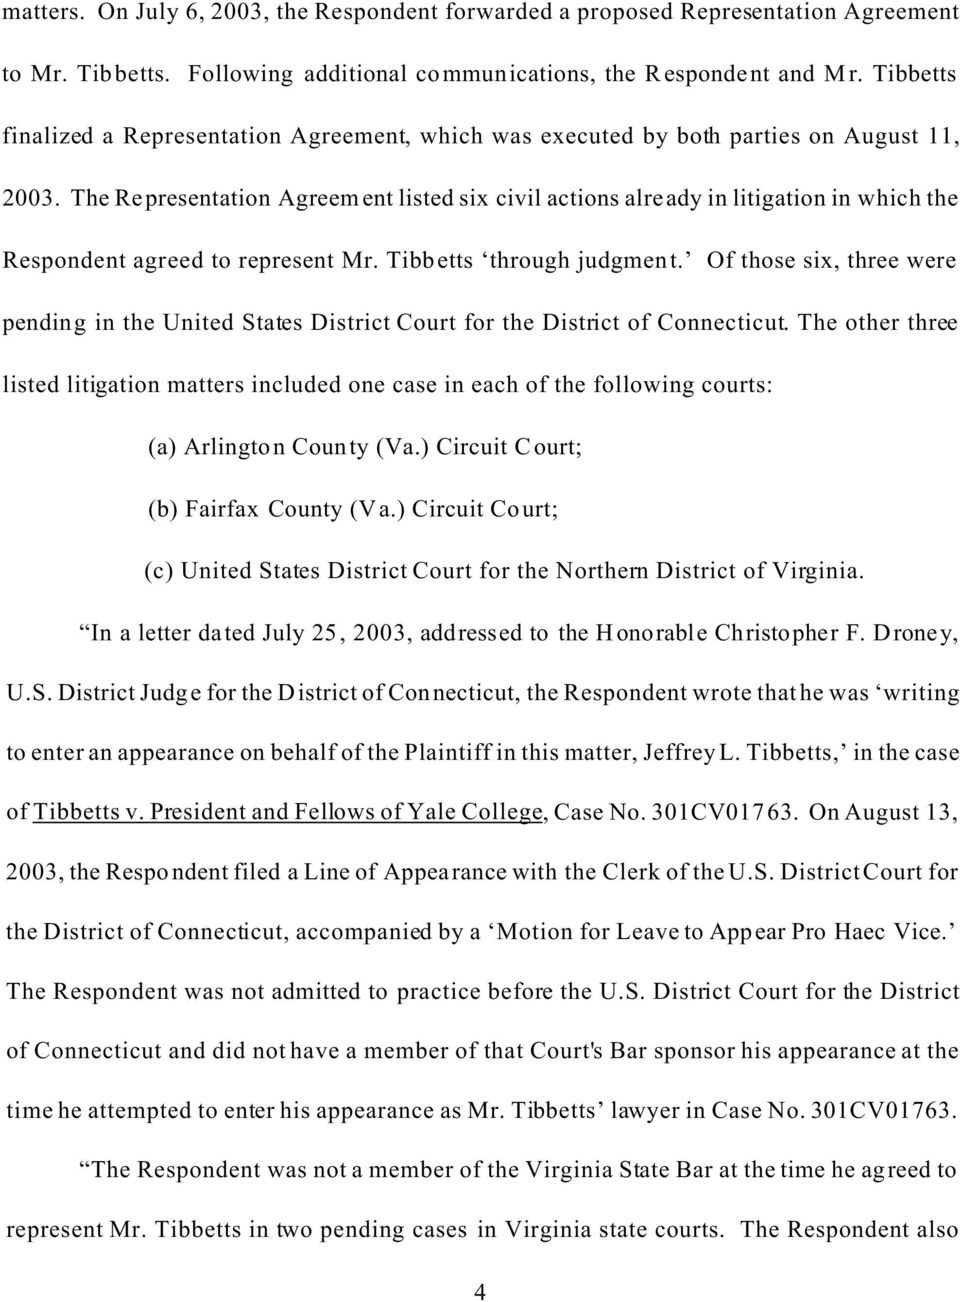 The Representation Agreement listed six civil actions already in litigation in which the Respondent agreed to represent Mr. Tibbetts through judgment.